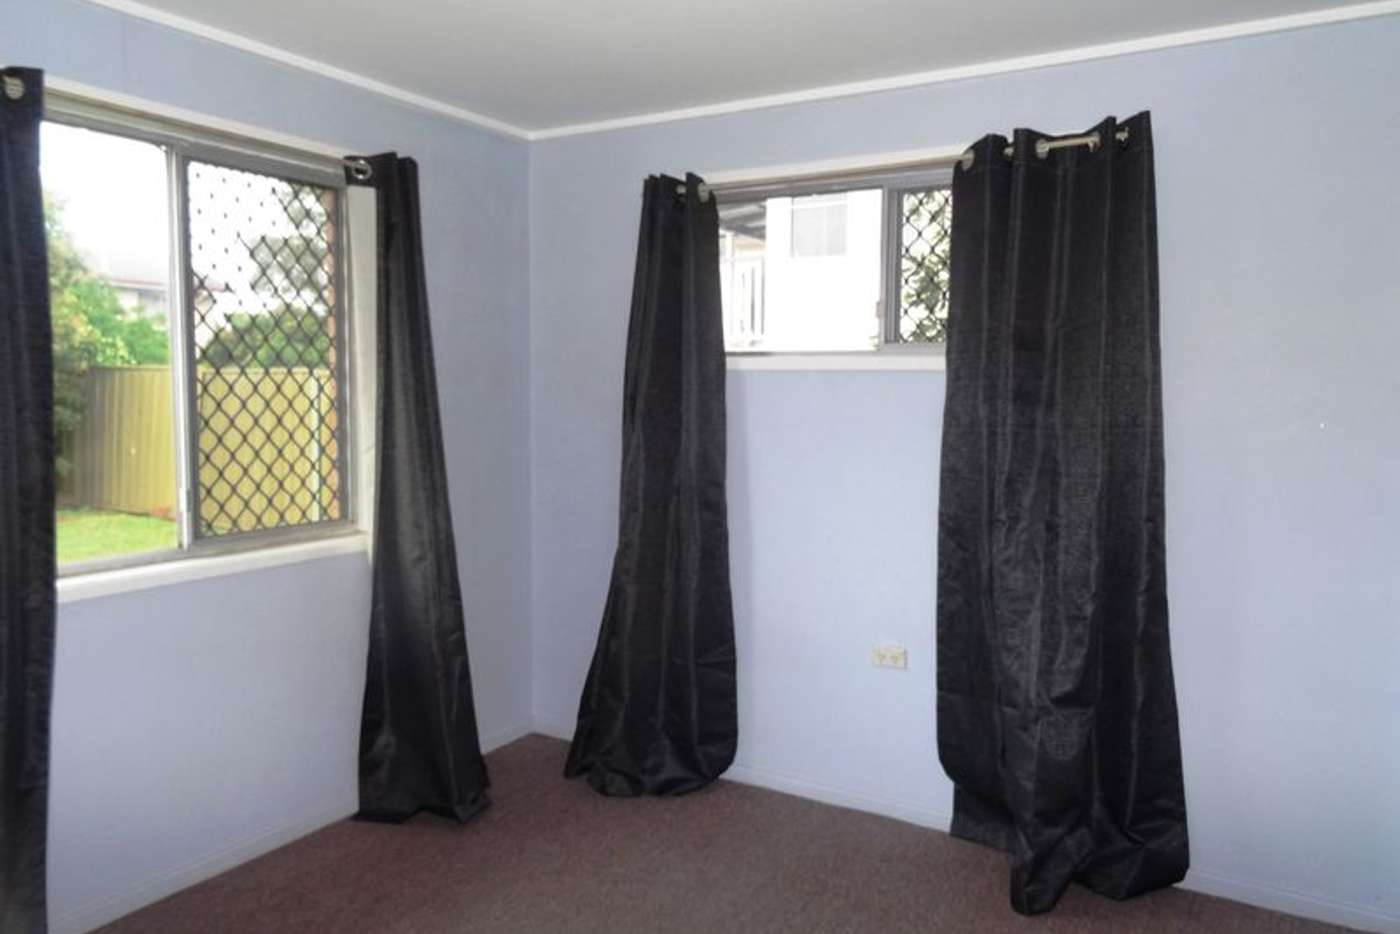 Sixth view of Homely unit listing, 2/36 Canberra Street, Harristown QLD 4350